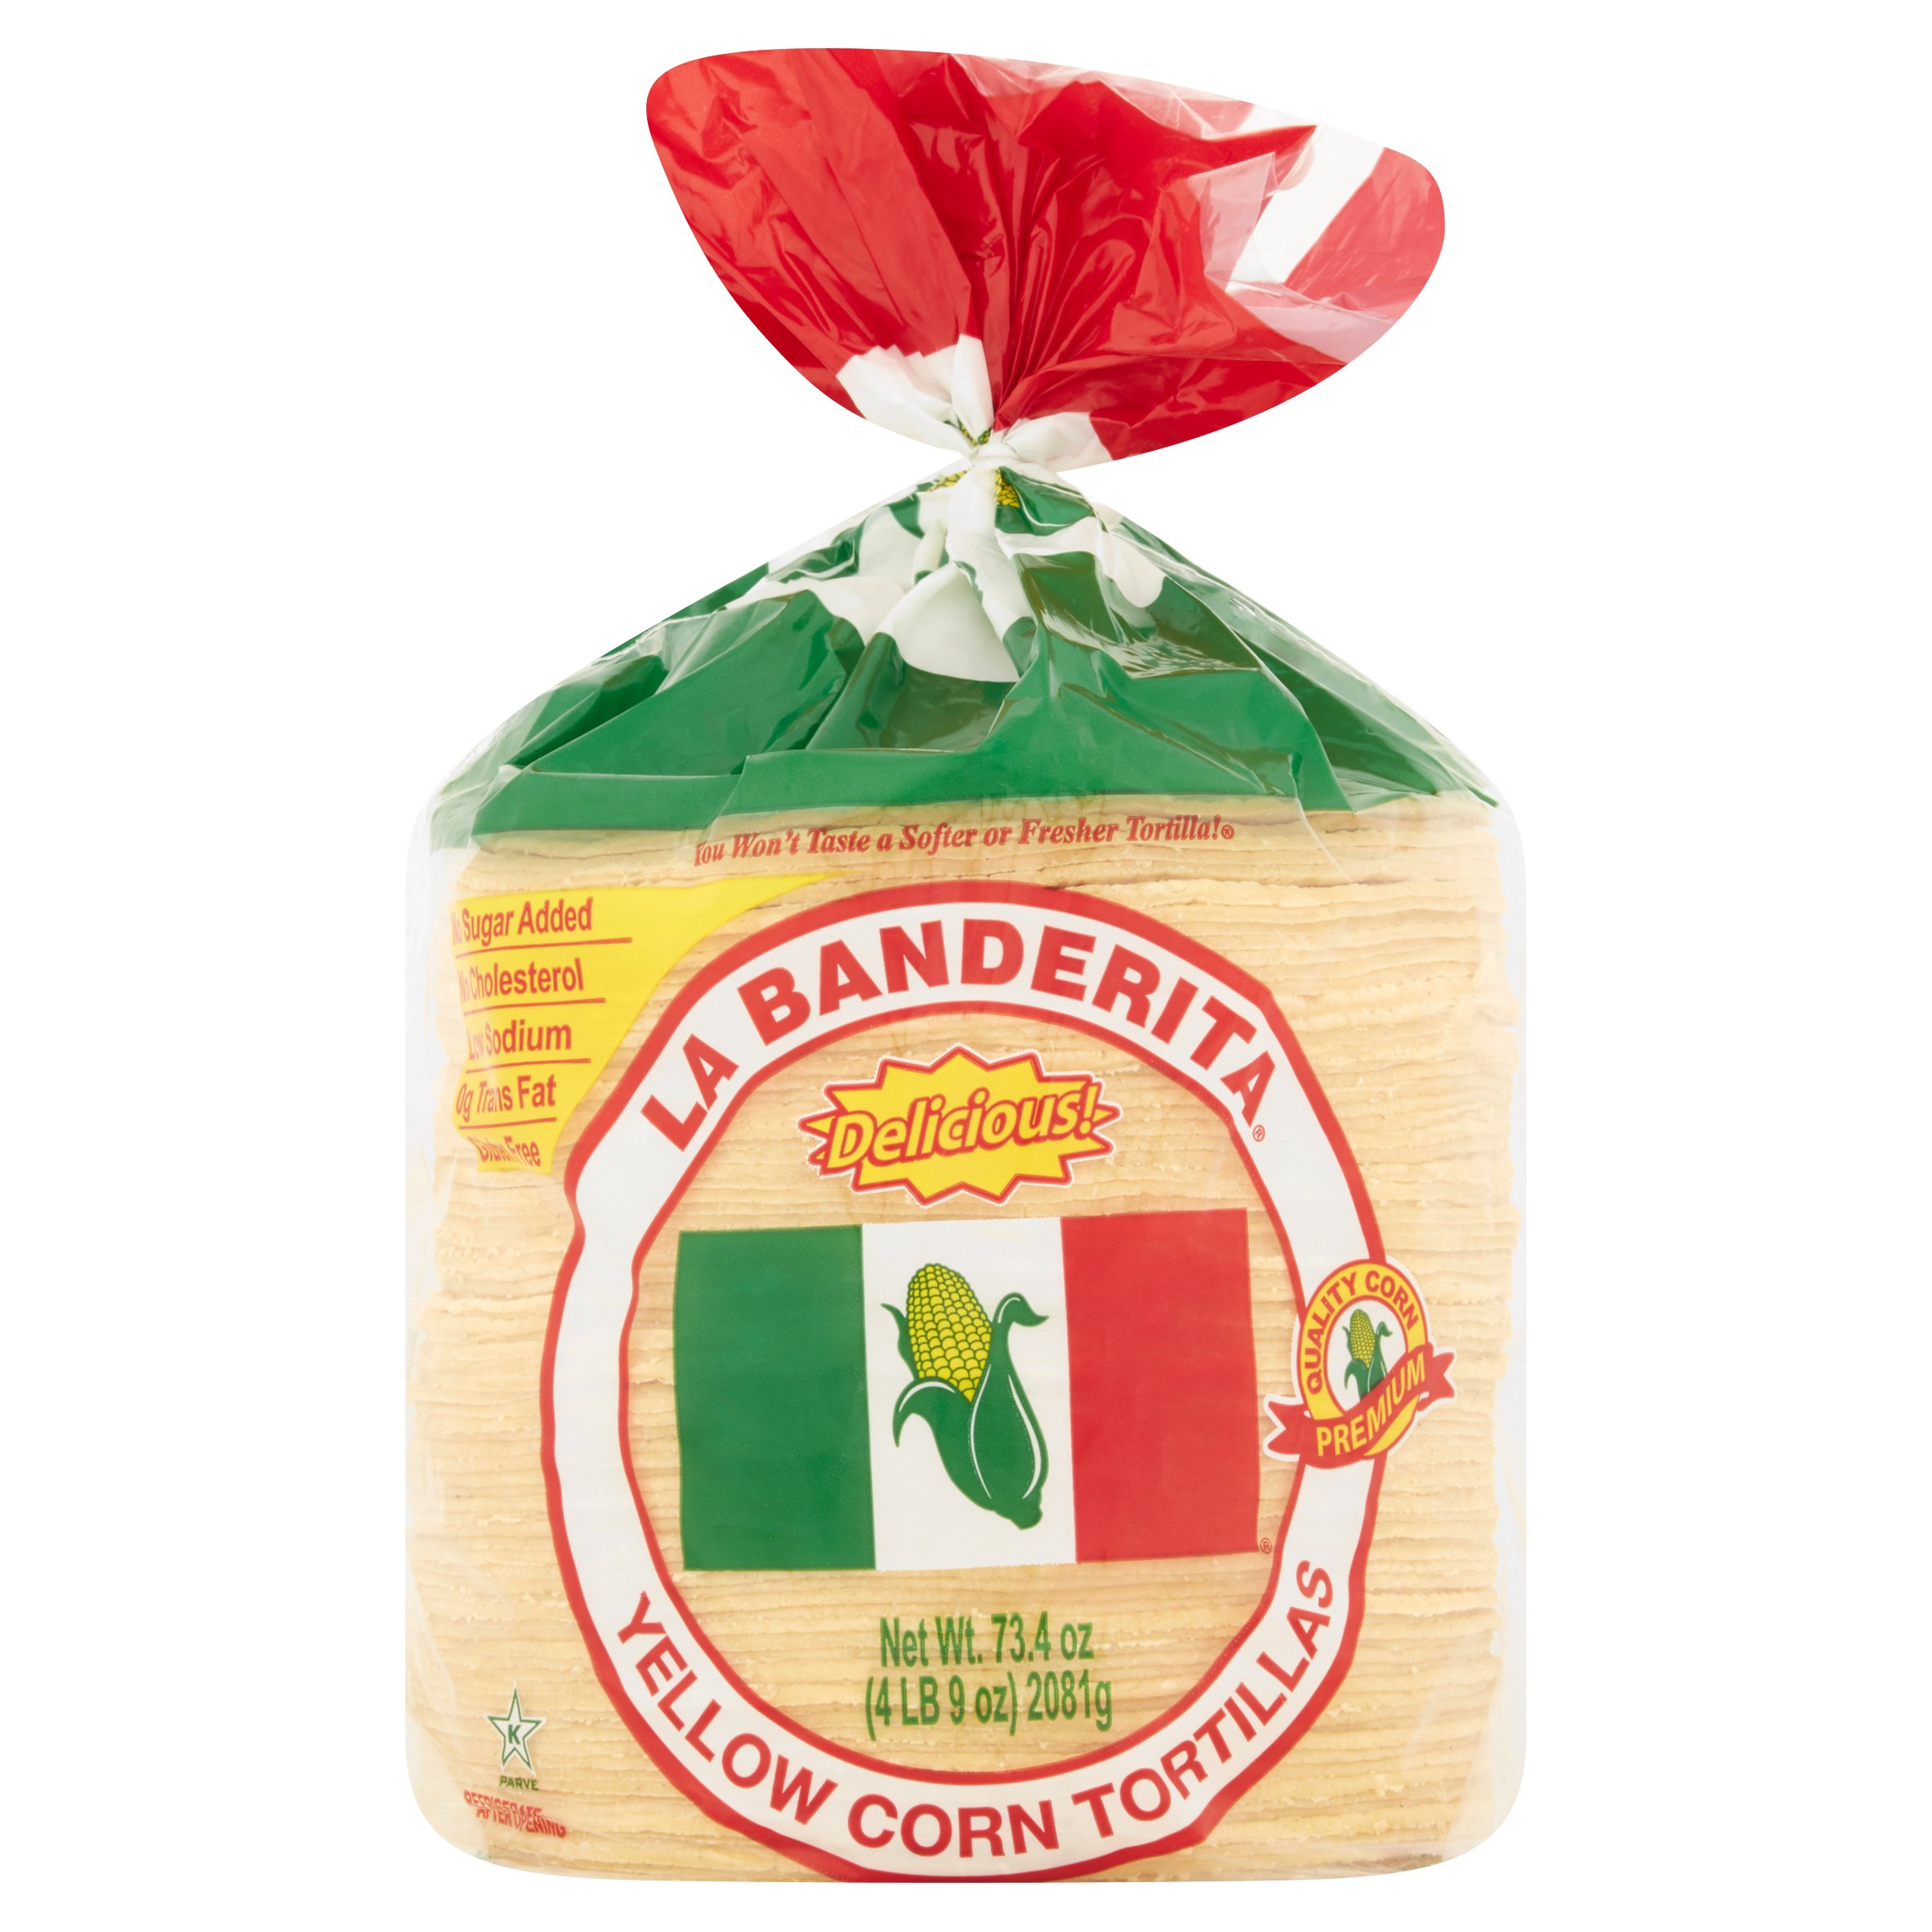 La Banderita Yellow Corn Tortillas, 73.4 oz